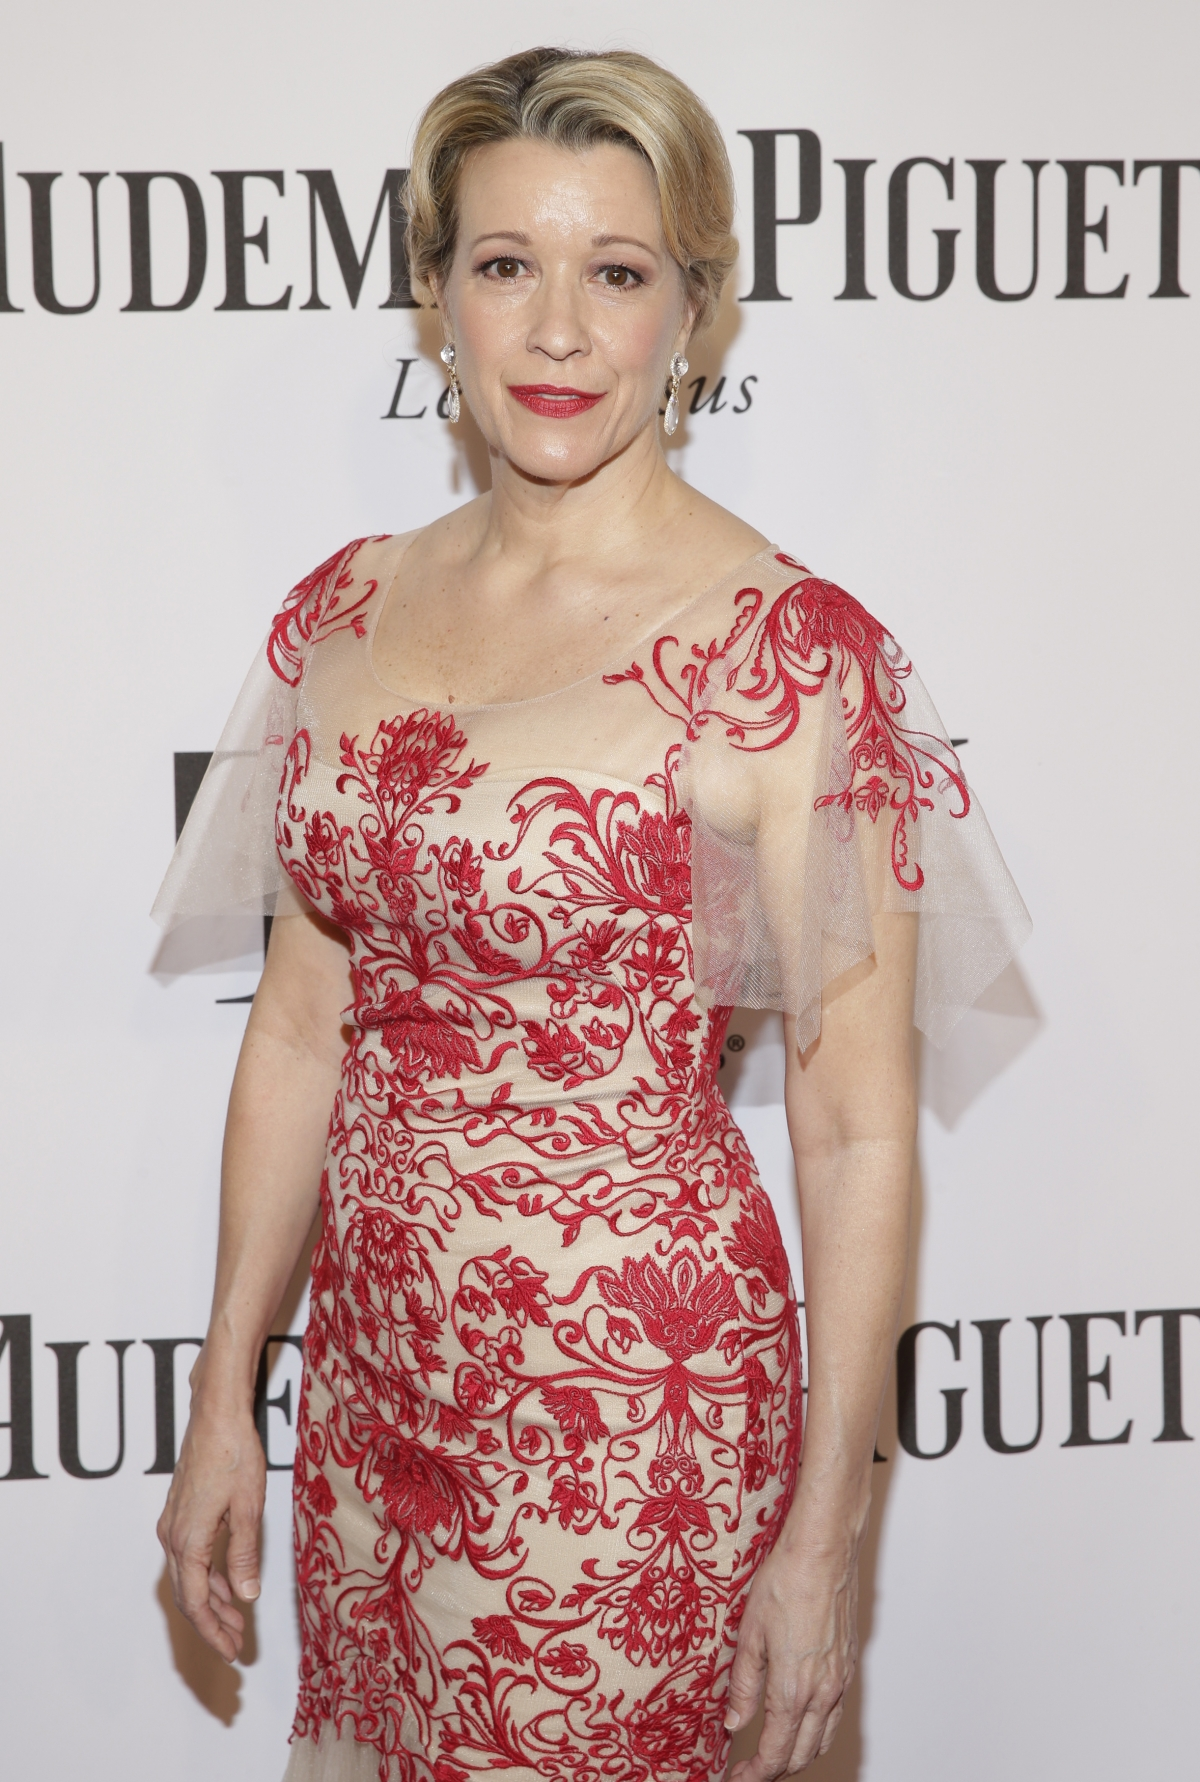 Actress Linda Emond arrives for the American Theatre Wing's 68th annual Tony Awards at Radio City Music Hall in New York, June 8, 2014.